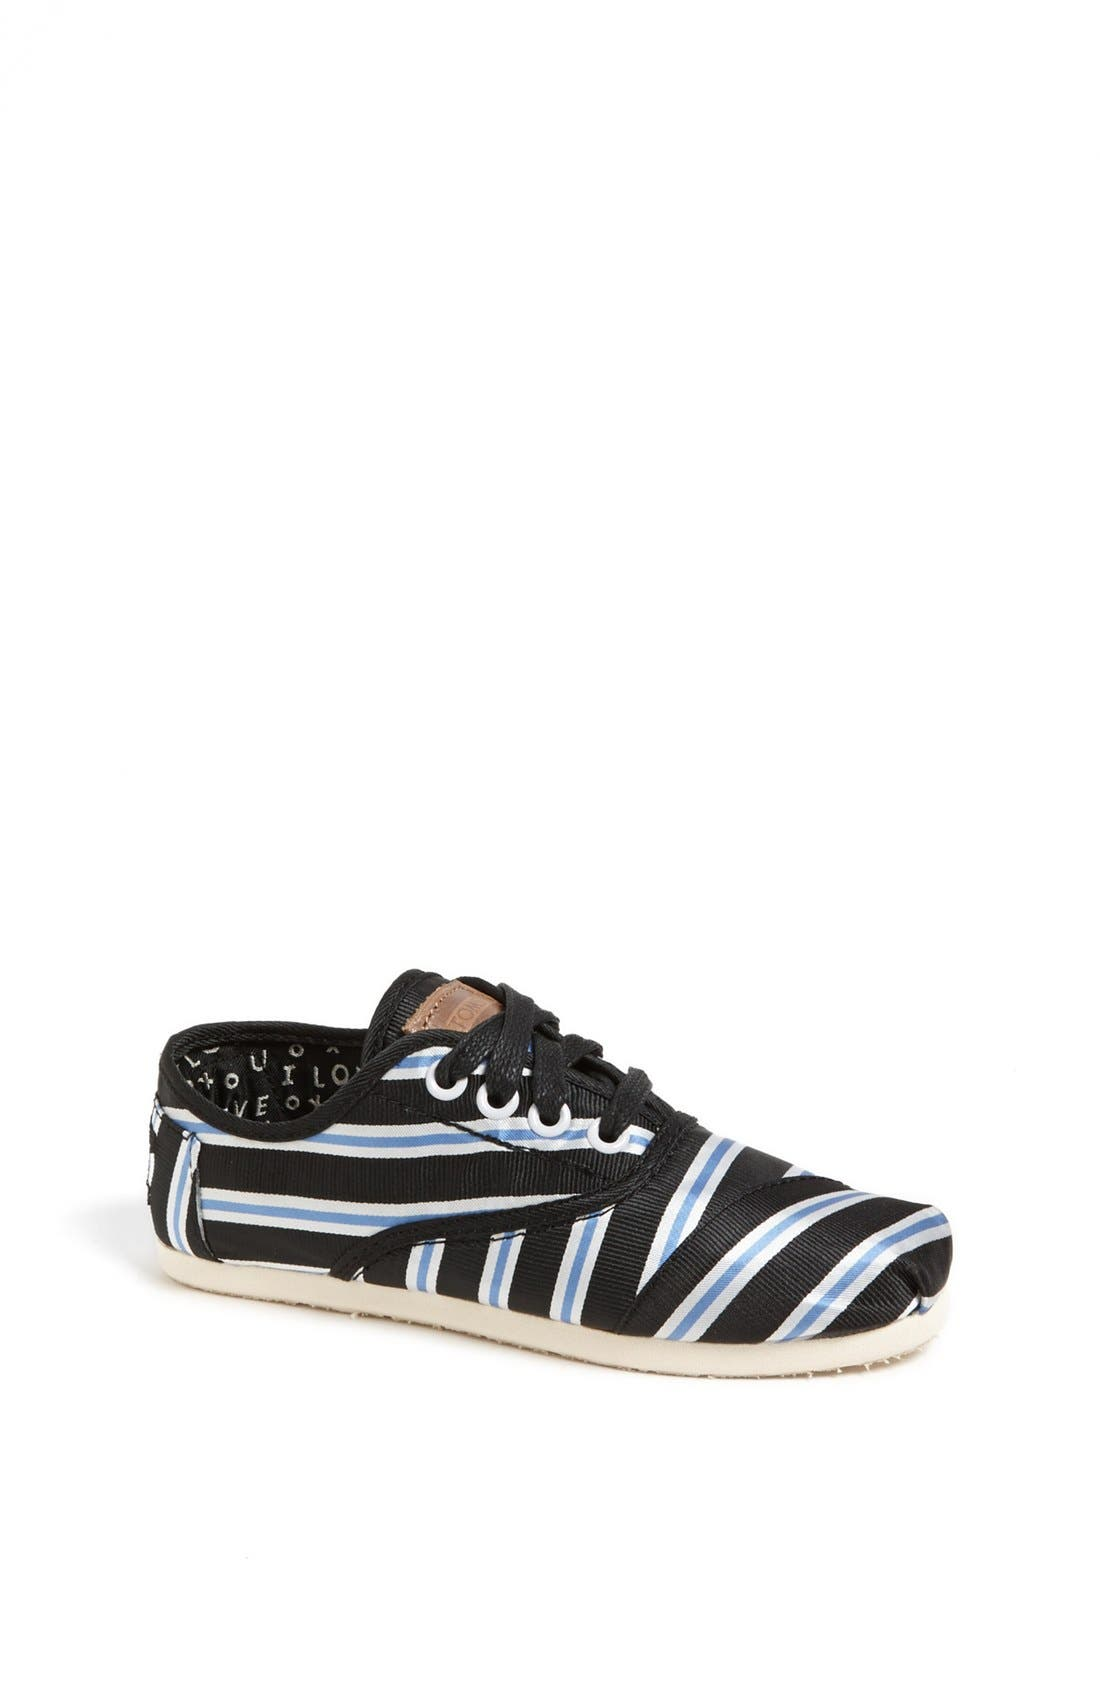 Main Image - TOMS 'Cordones - Tabitha Simmons' Slip-On (Toddler, Little Kid & Big Kid) (Limited Edition)